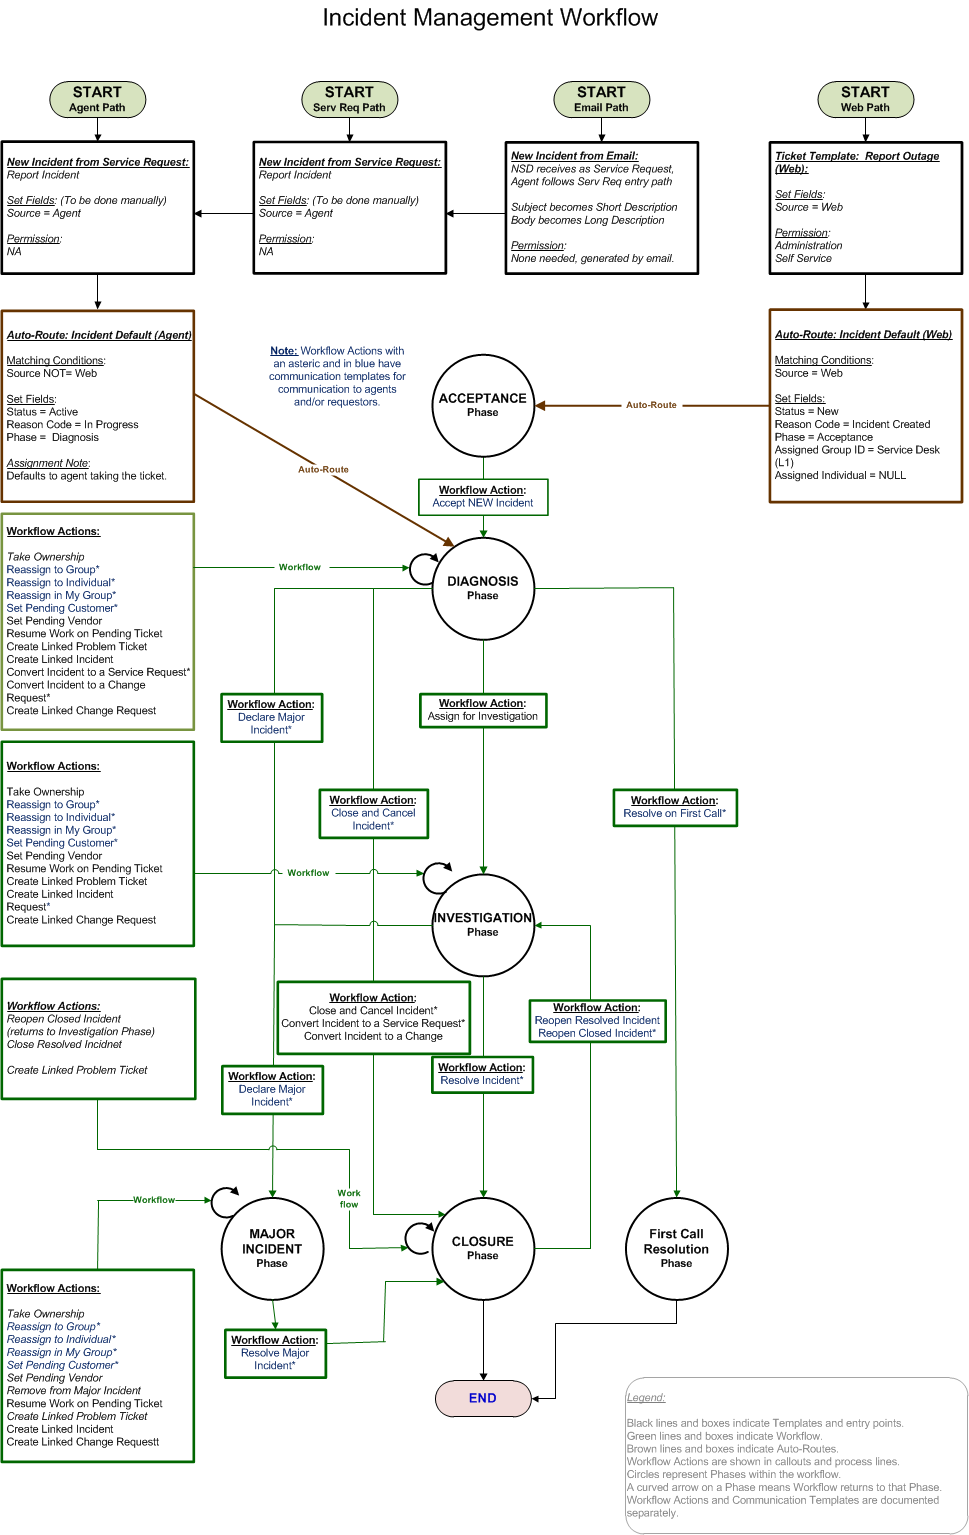 incident management process flow - Google Search | Incident ...